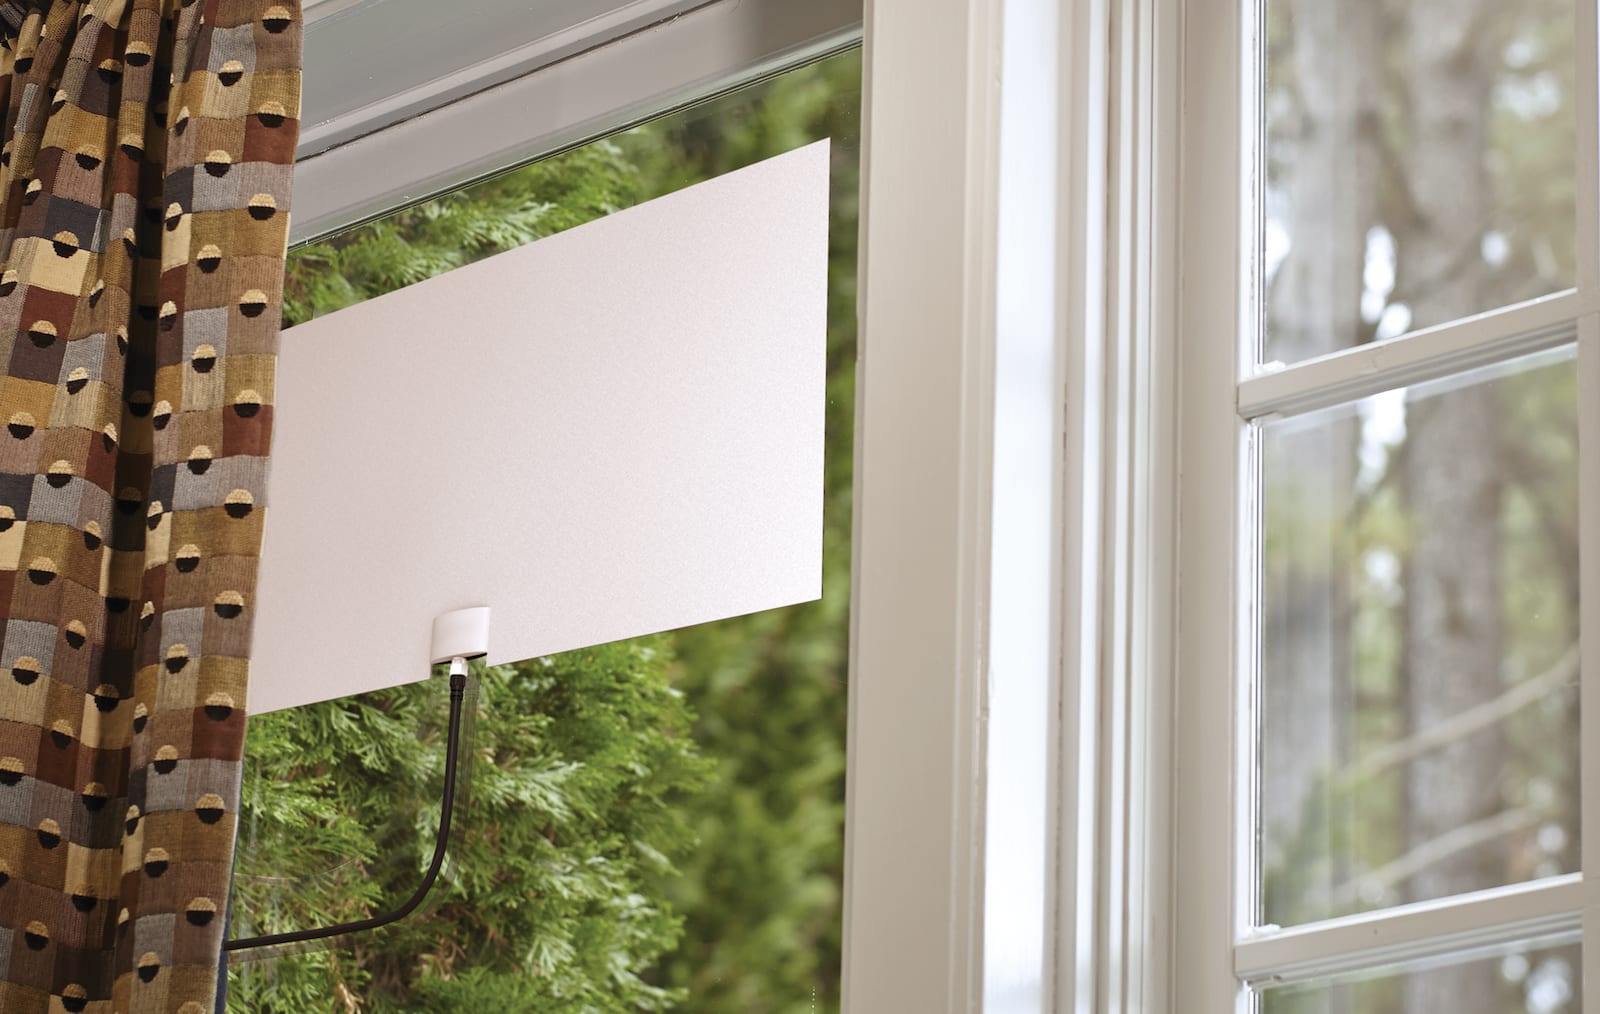 Mohu's latest indoor antenna has a 65-mile range